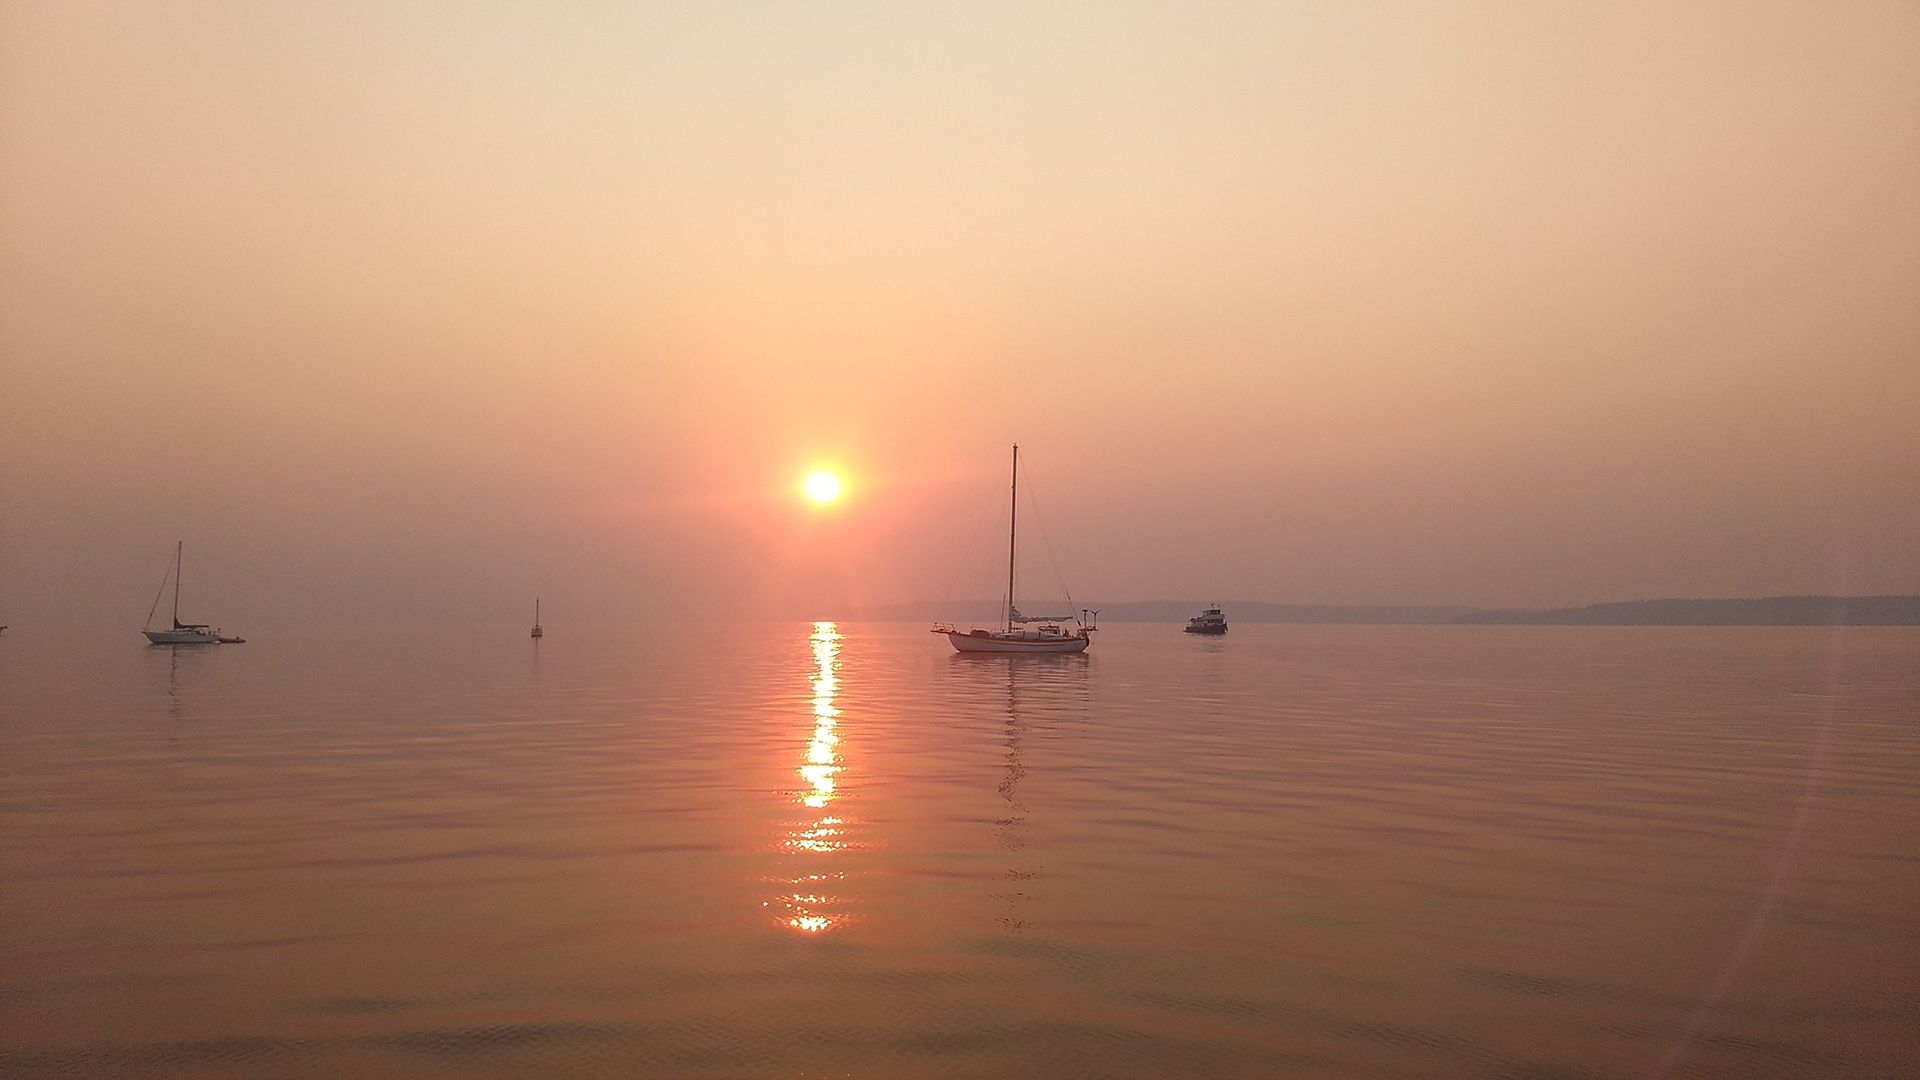 Several boats at anchor with a red, hazy sunrise in the background.